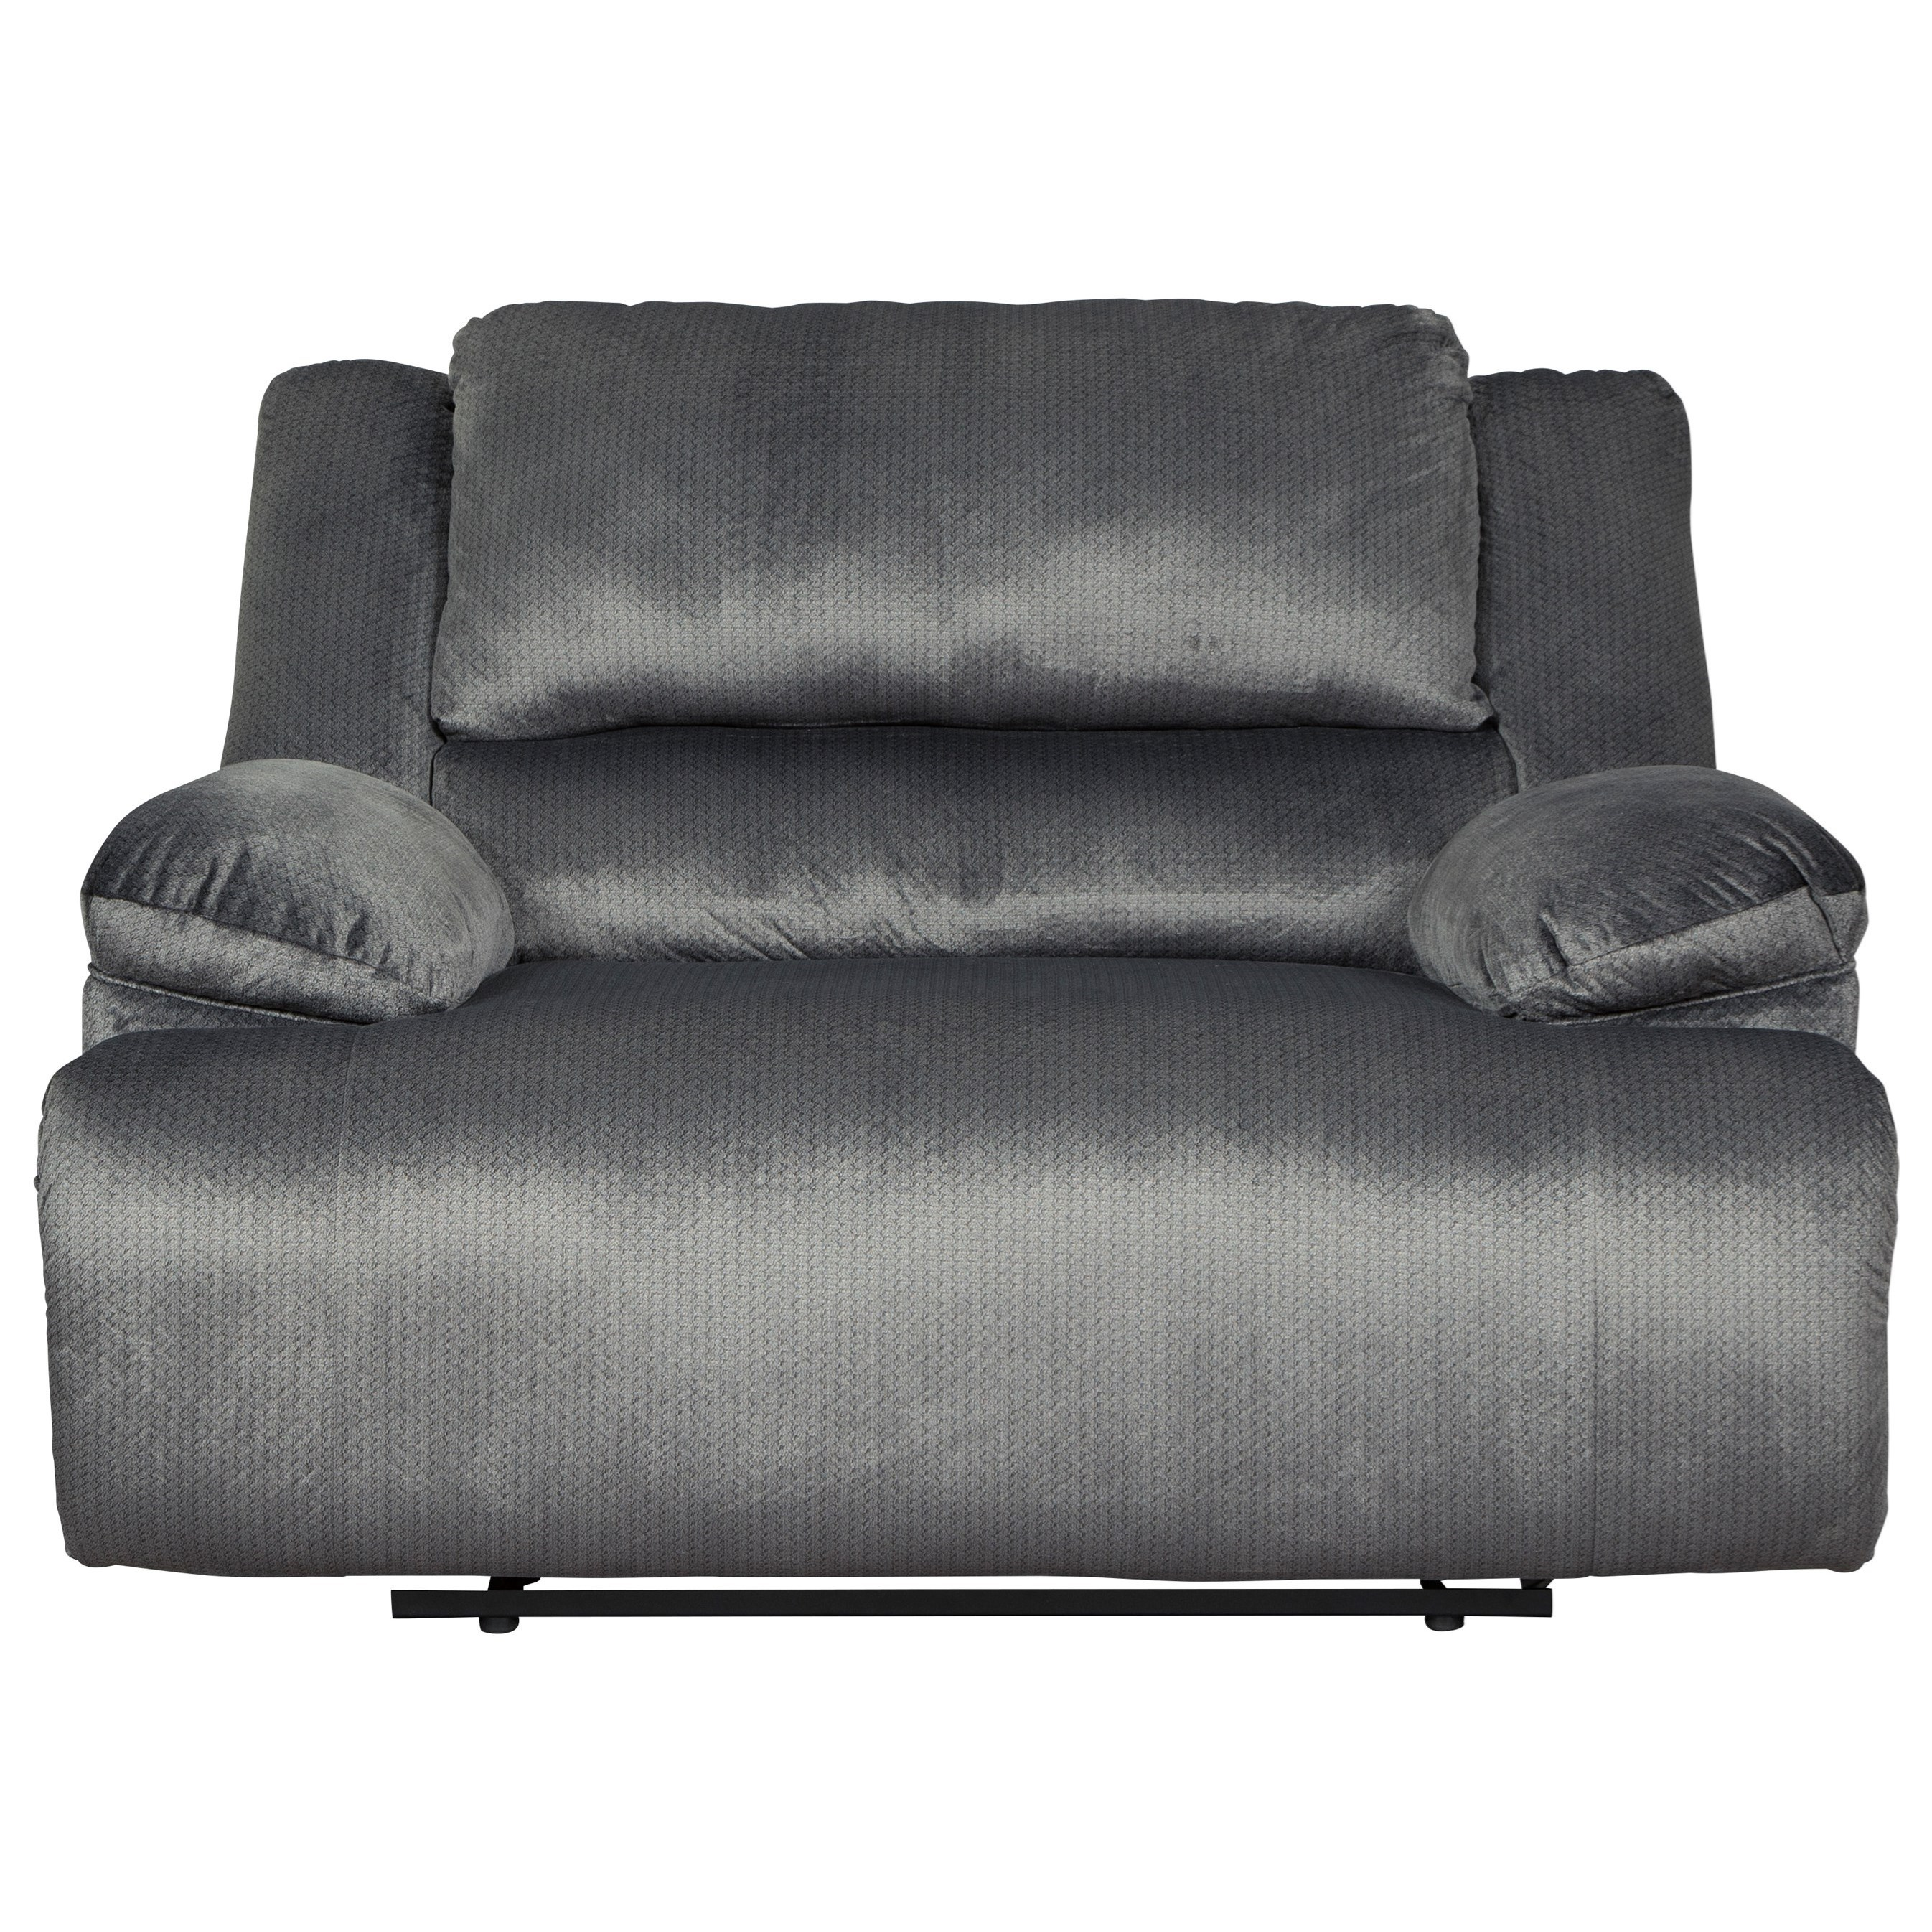 Clonmel Zero Wall Wide Seat Recliner by Signature Design by Ashley at Factory Direct Furniture